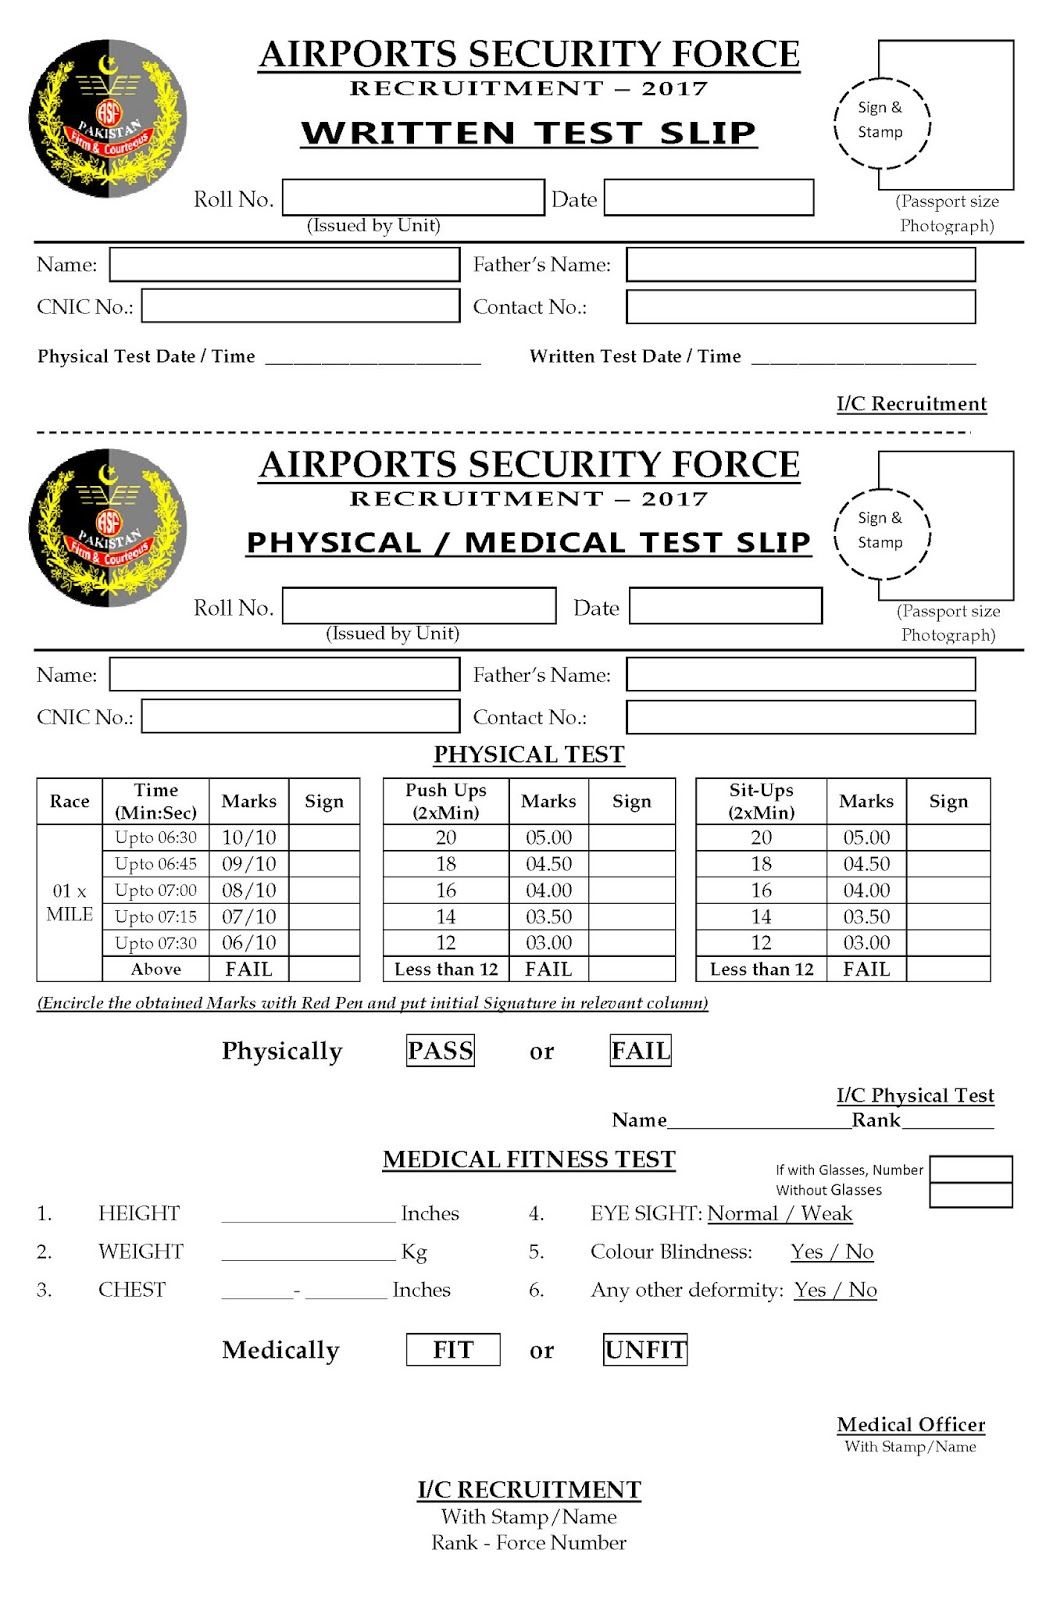 1200+ ASF Jobs 2017 Download Application Form Airport Security ...